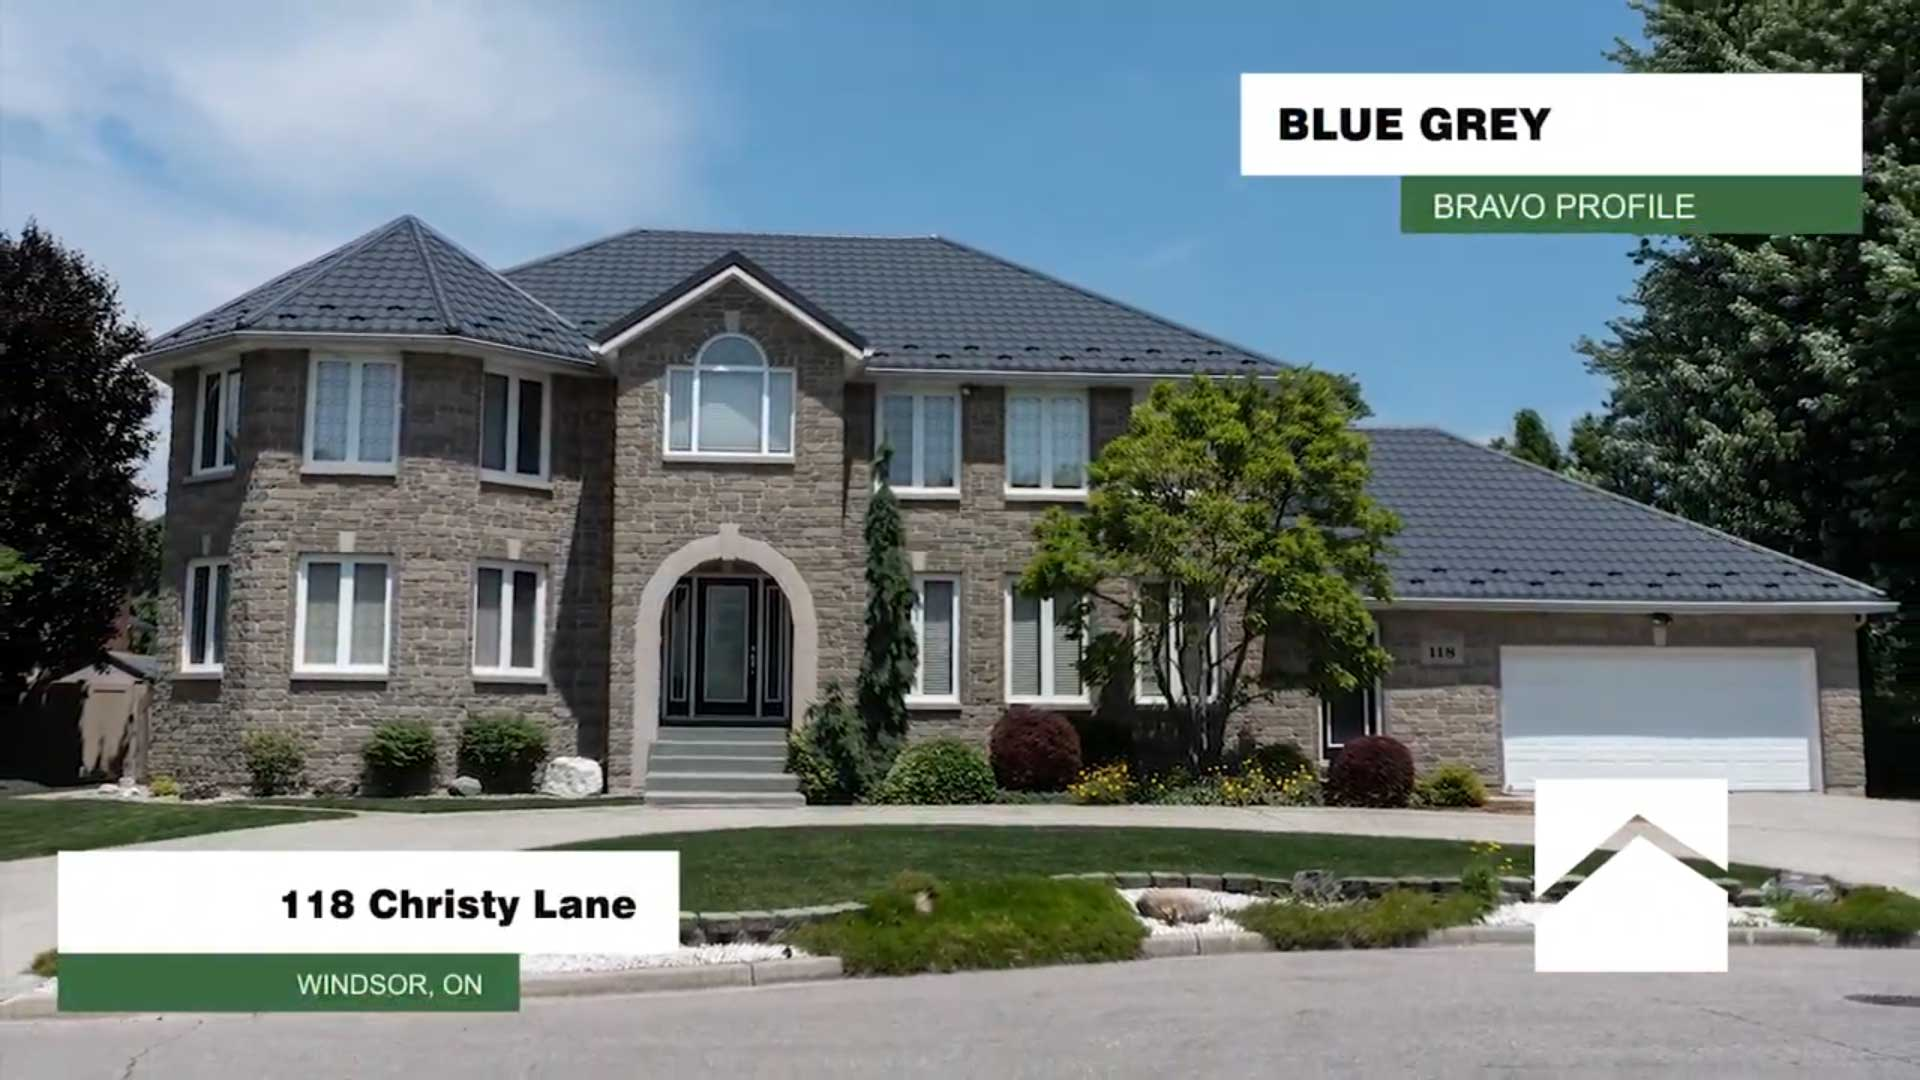 118 Christy Lane Windsor Ontario BRAVO Profile Blue Grey Colour